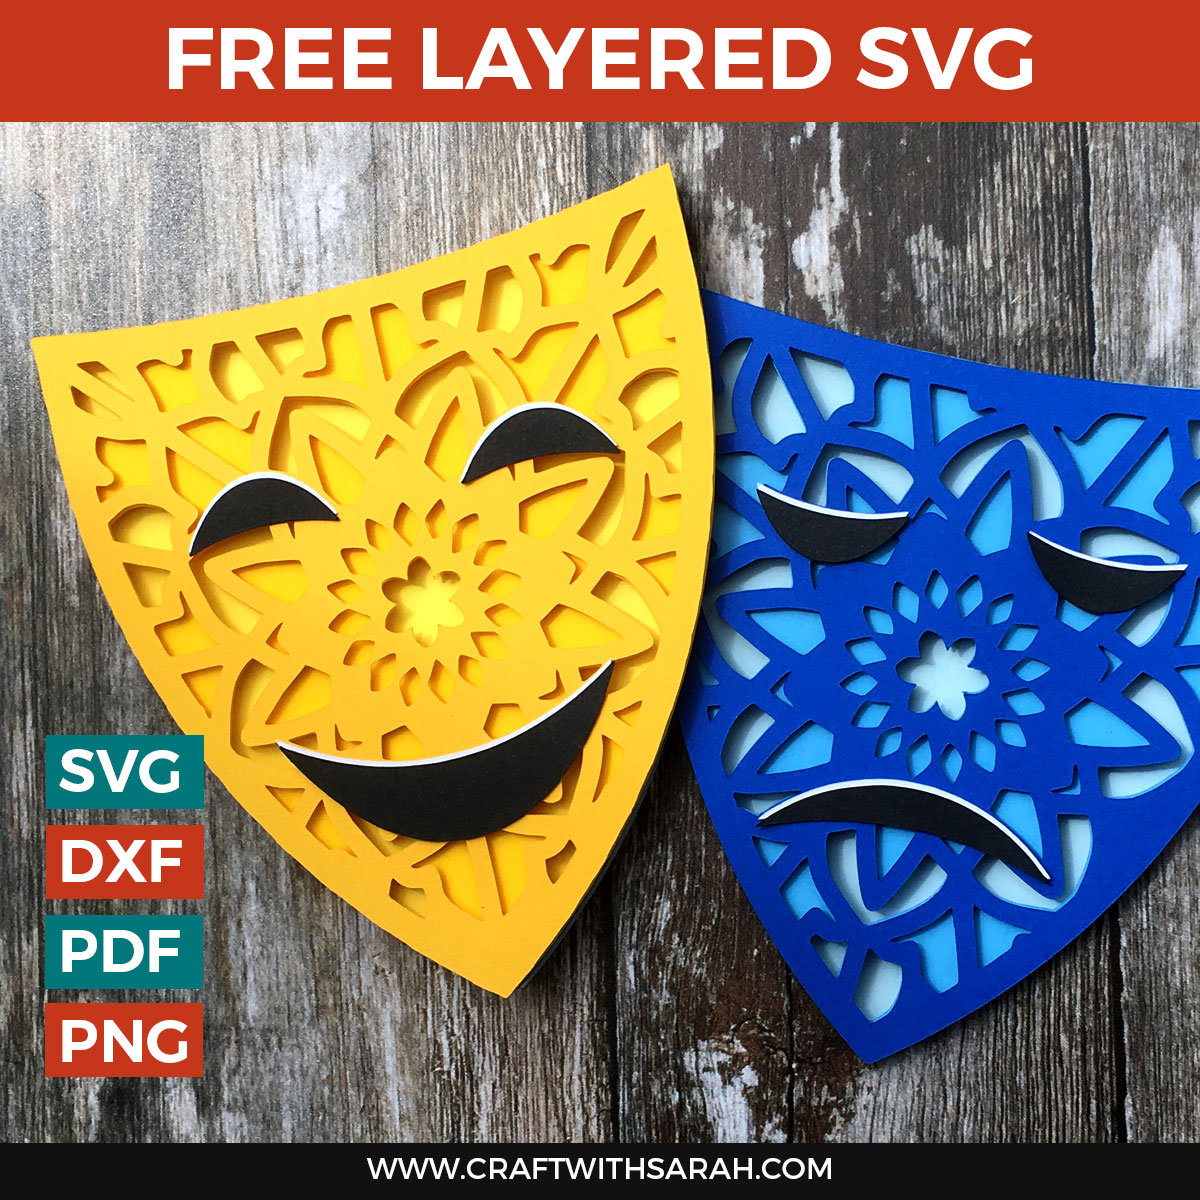 Happy Sad Drama Masks Layered Svg Craft With Sarah See more ideas about drama masks, theatre masks, drama. happy sad drama masks layered svg